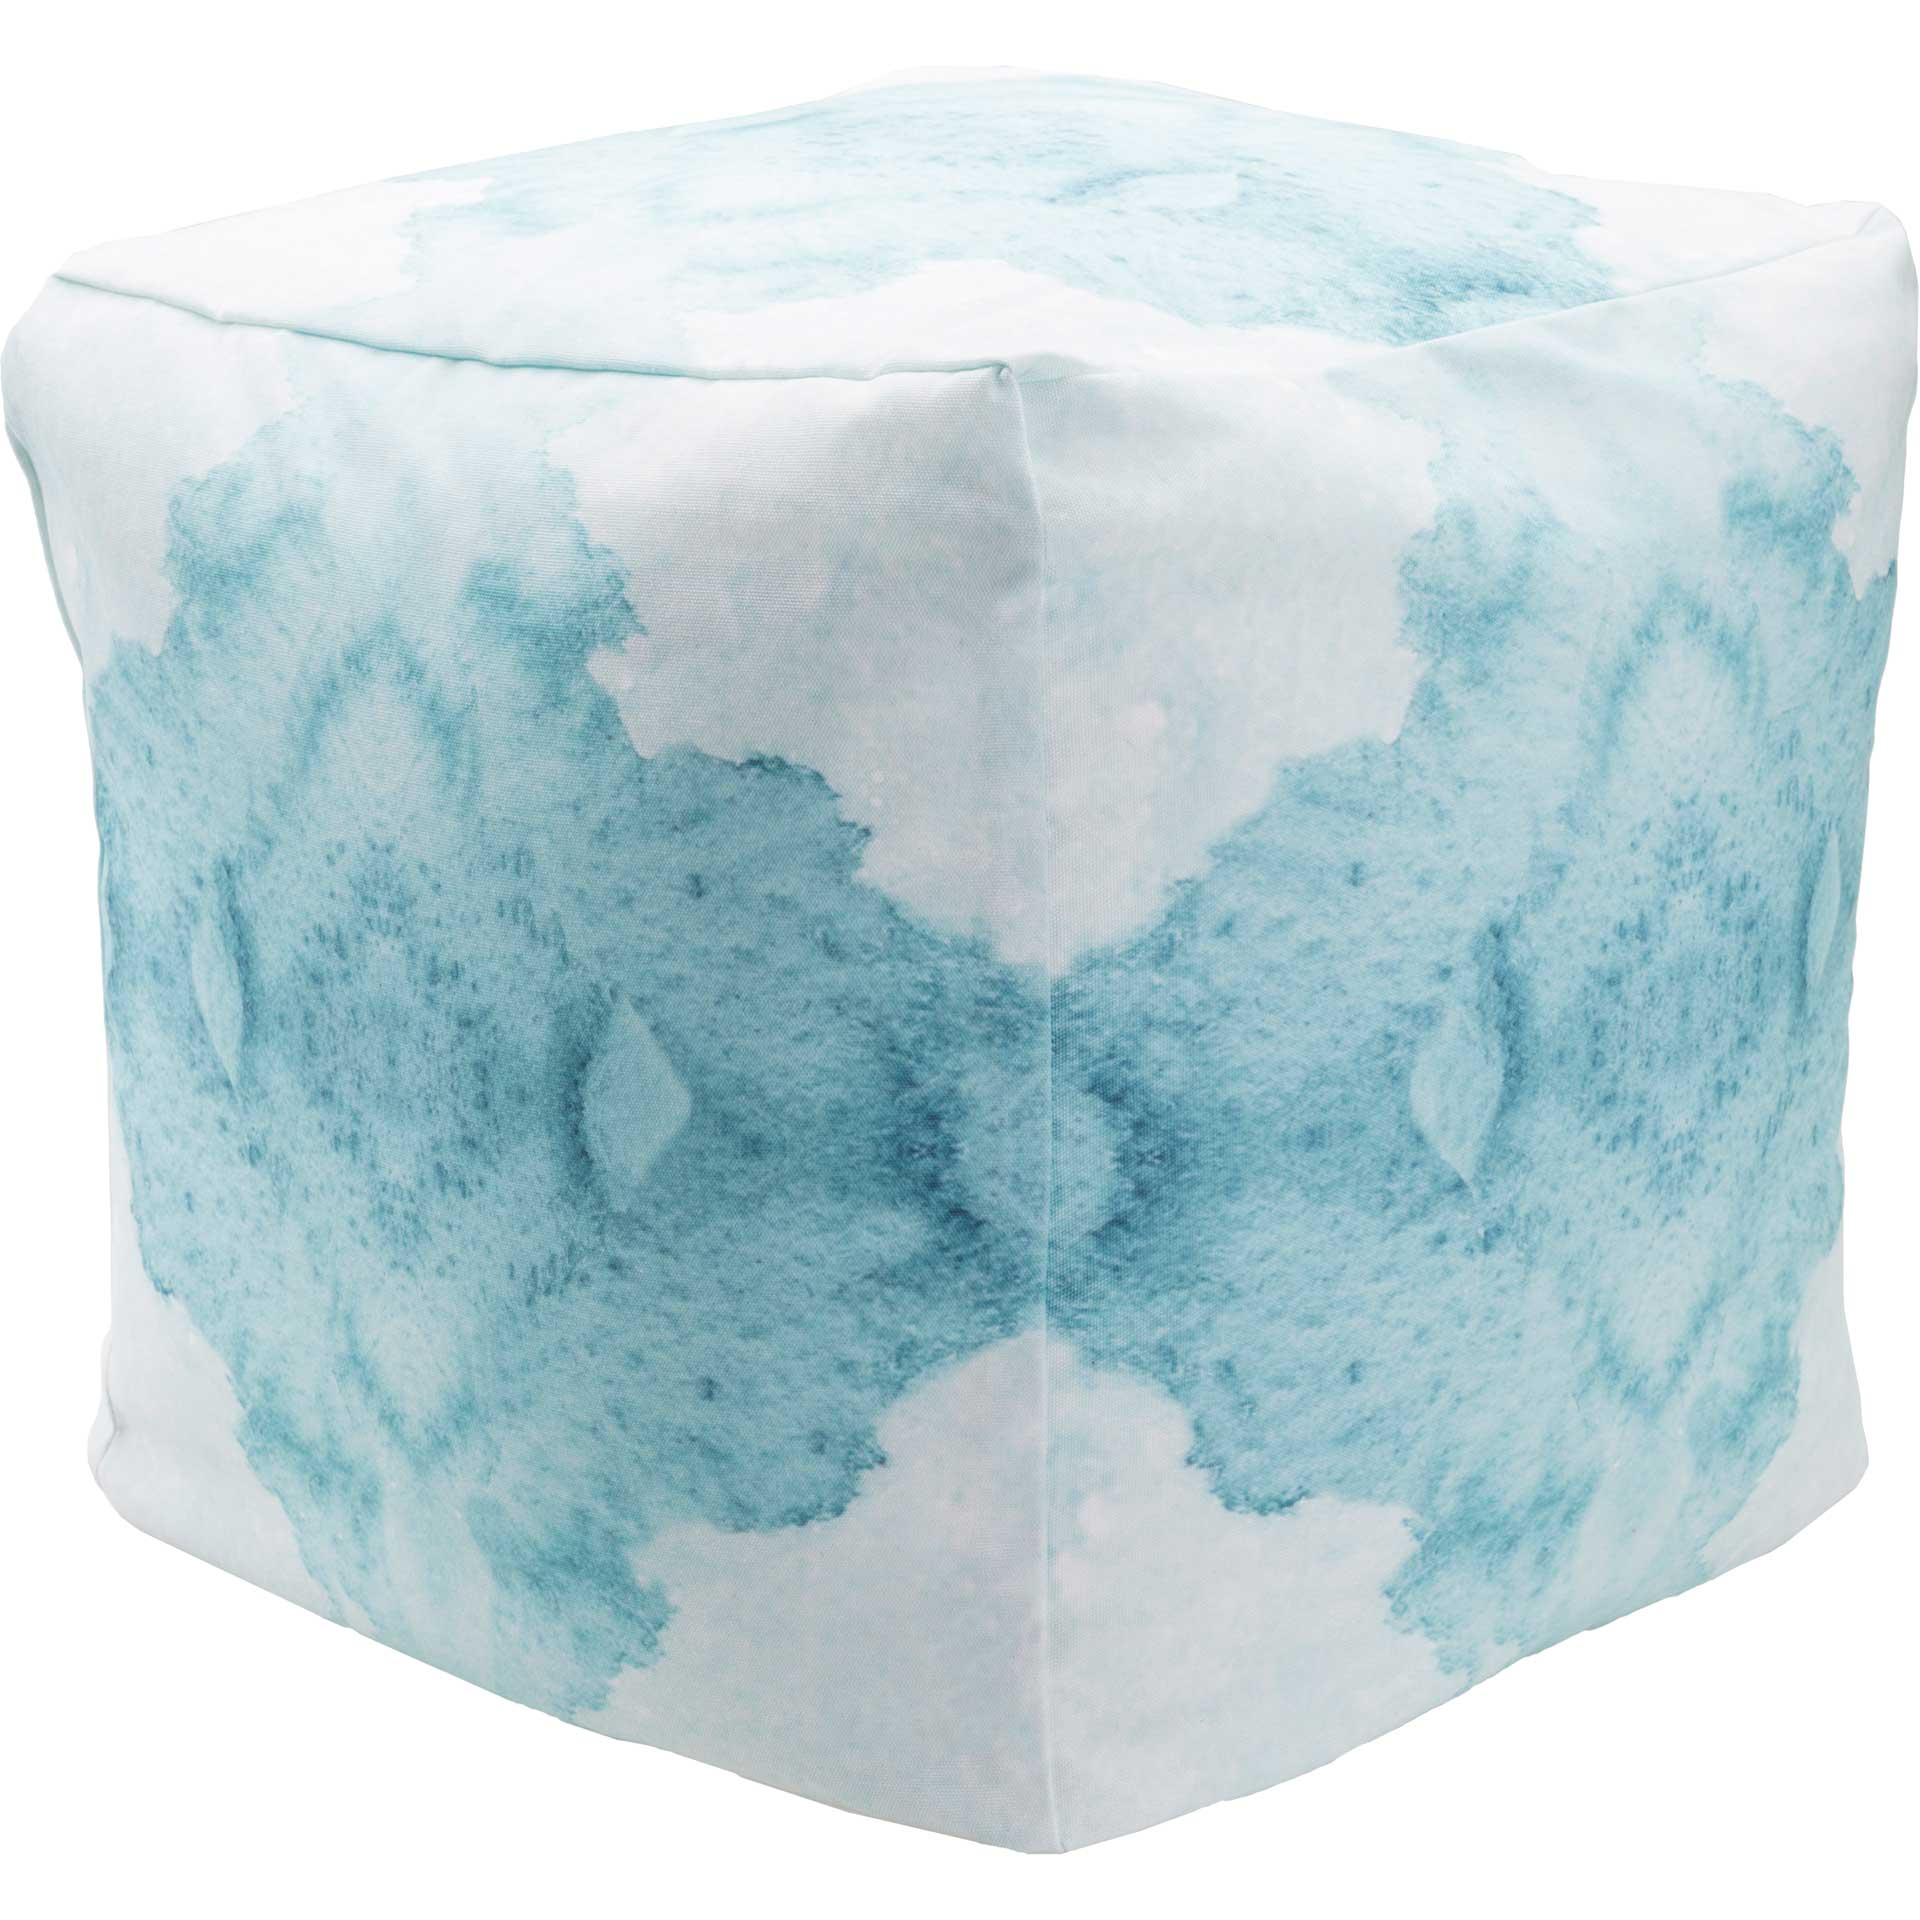 Standard Cube Watercolor Pouf